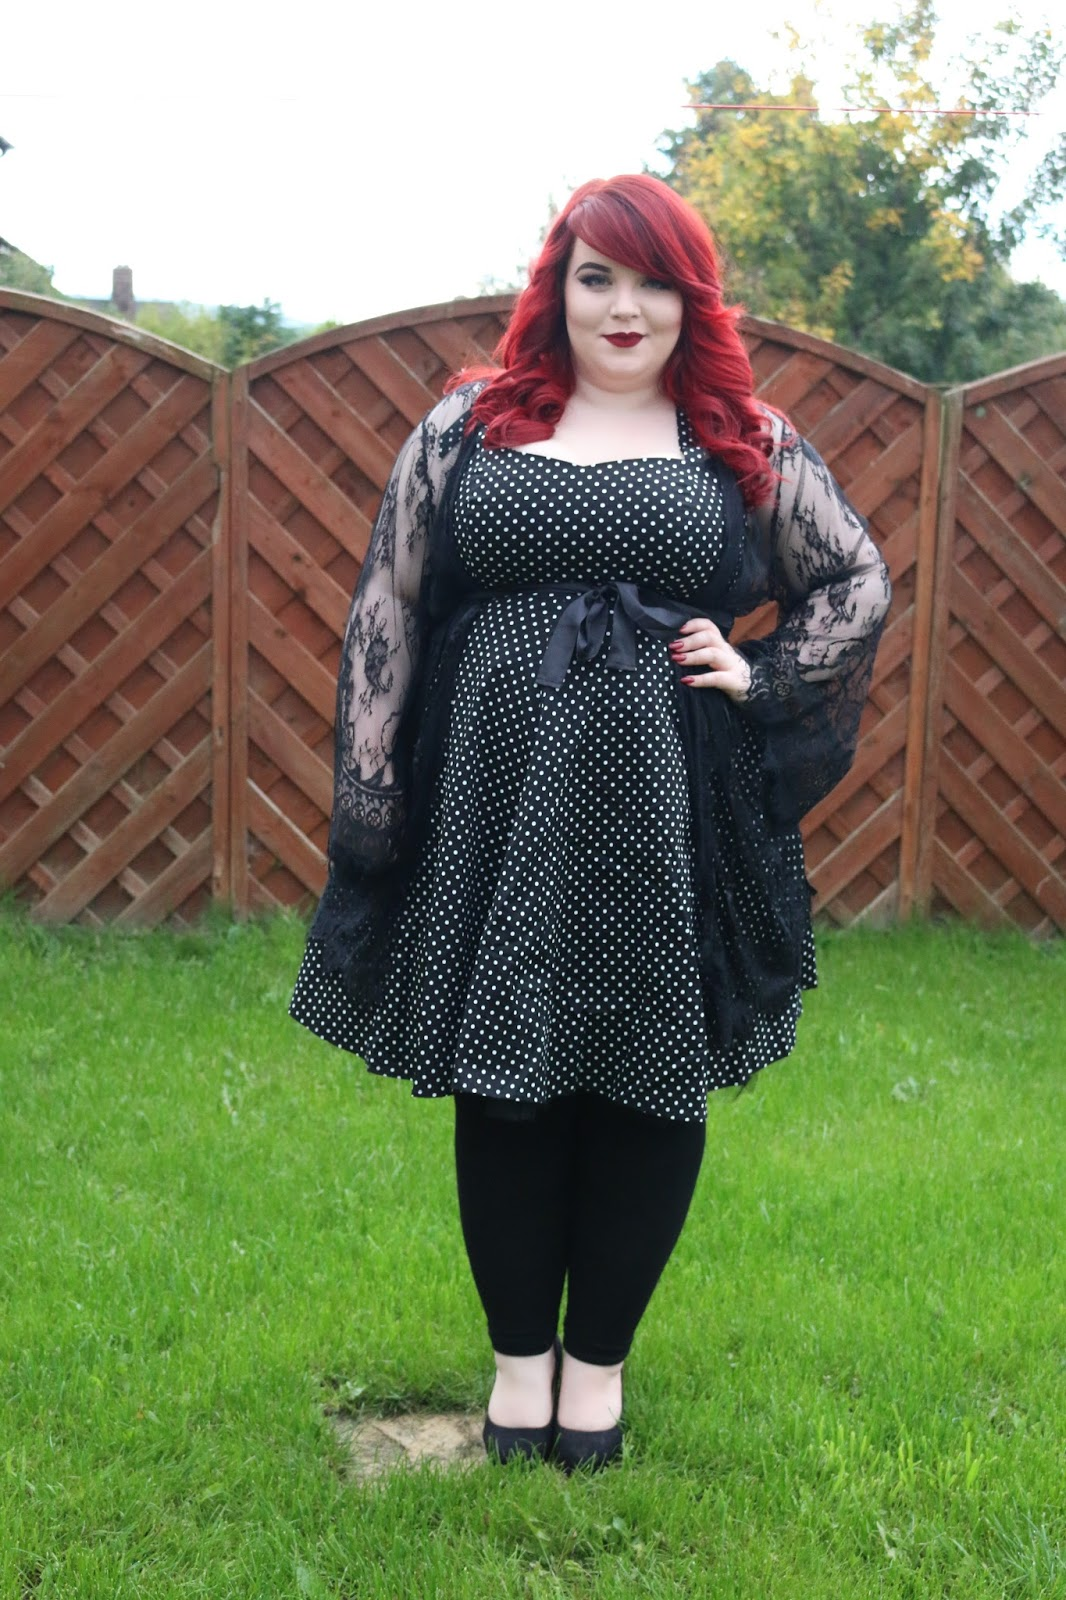 ann summers #afterparty range with an izabel london dress - she